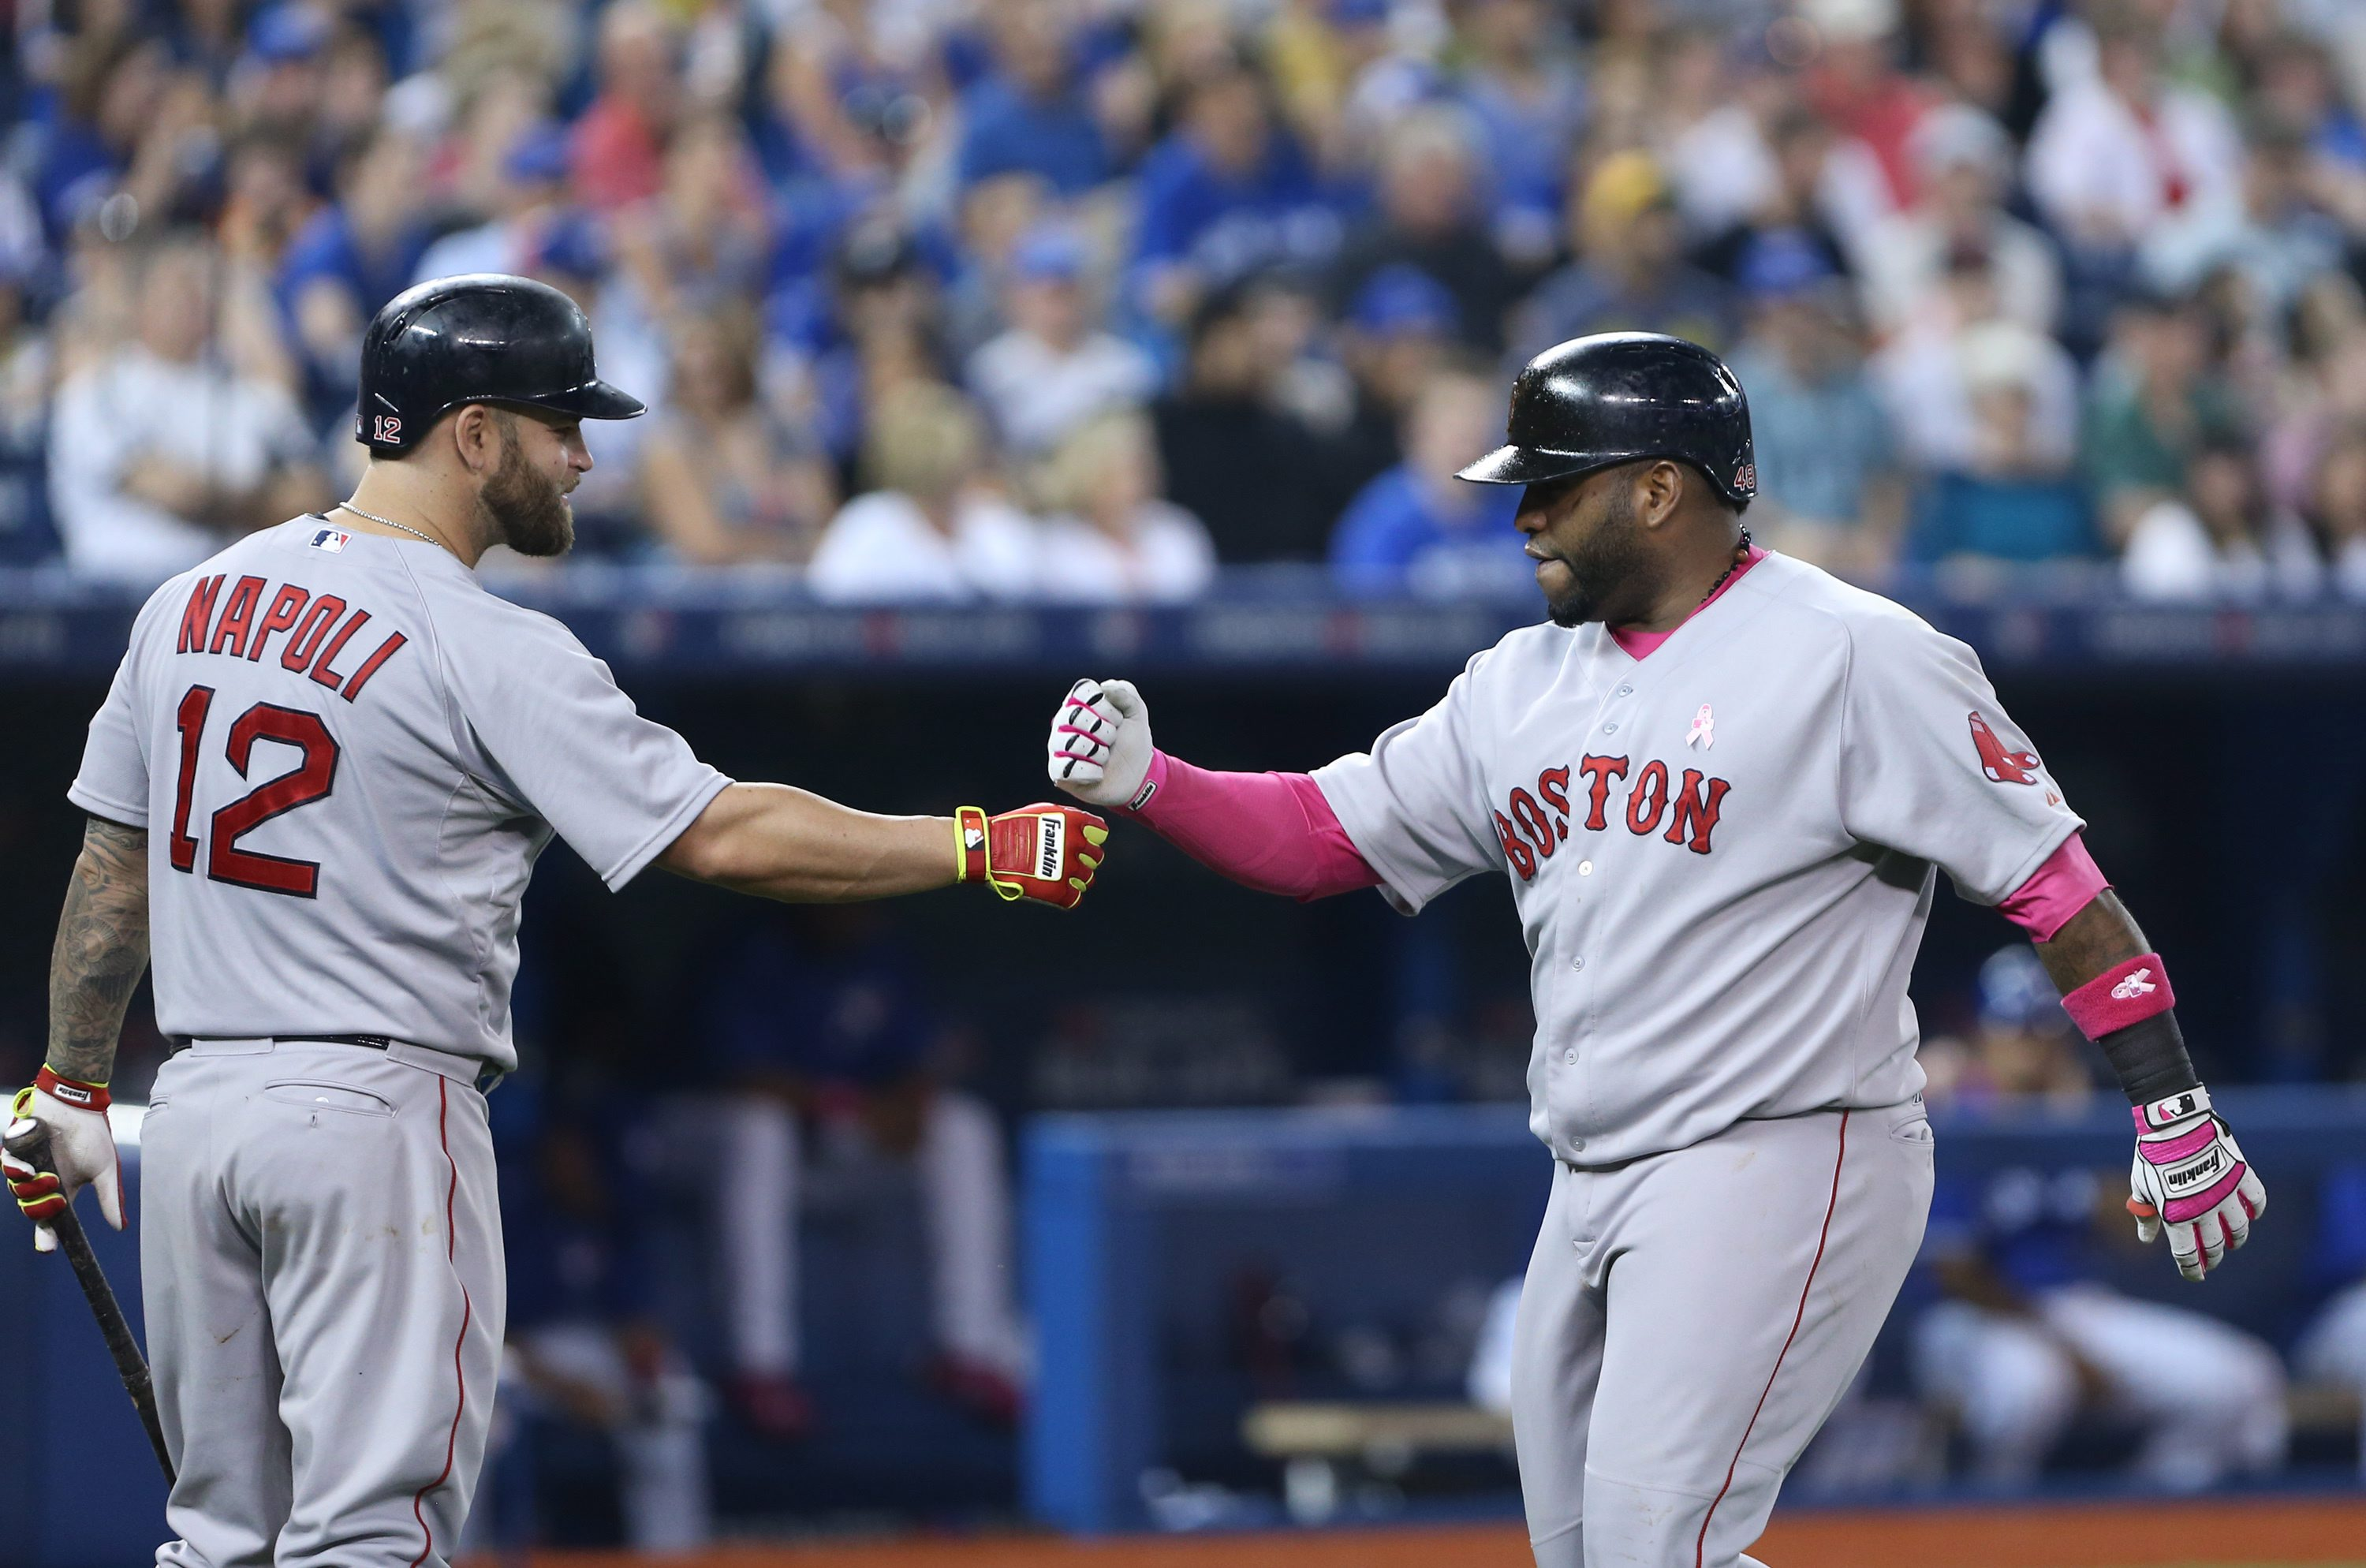 Boston Red Sox first baseman Mike Napoli (12), left, celebrates with Boston Red Sox third baseman Pablo Sandoval (48) after Sandoval hit a two-run homer in the 5th inning of the baseball game between the Toronto Blue Jays and Boston in Toronto on Sunday,